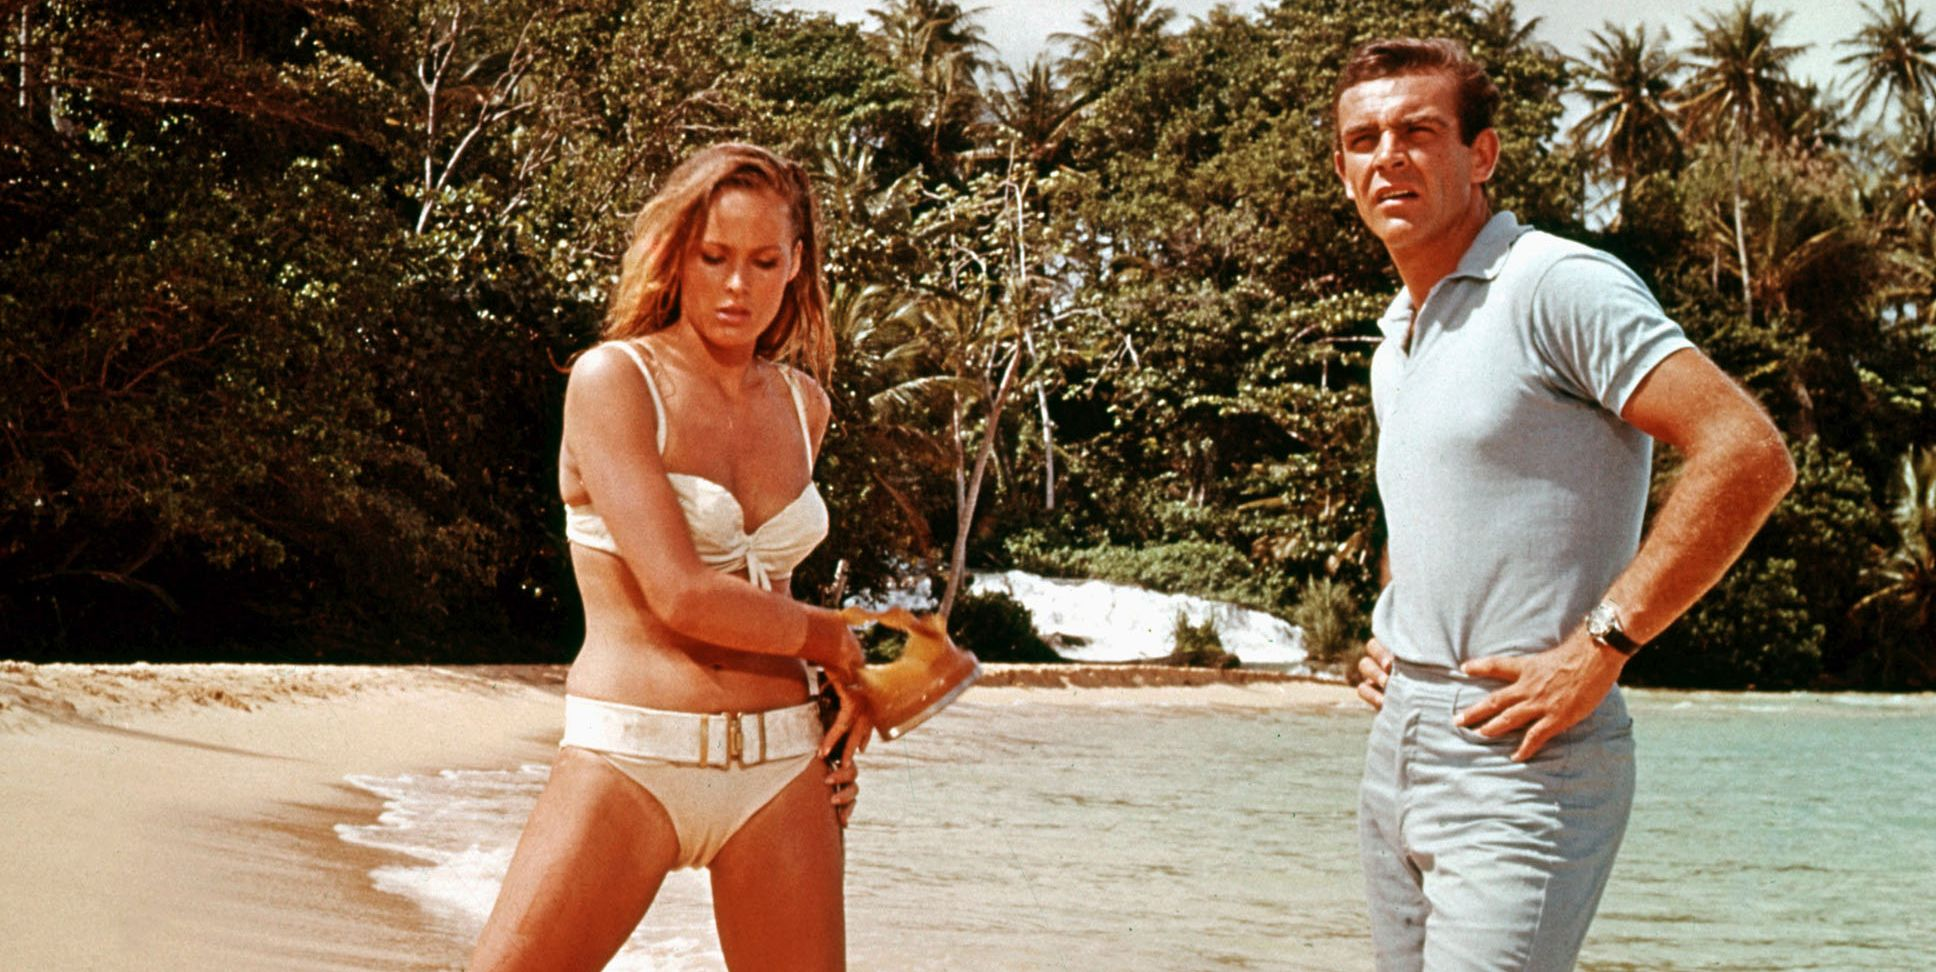 Judging by these photos, George Lazenby had the best time when the camera weren't rolling.